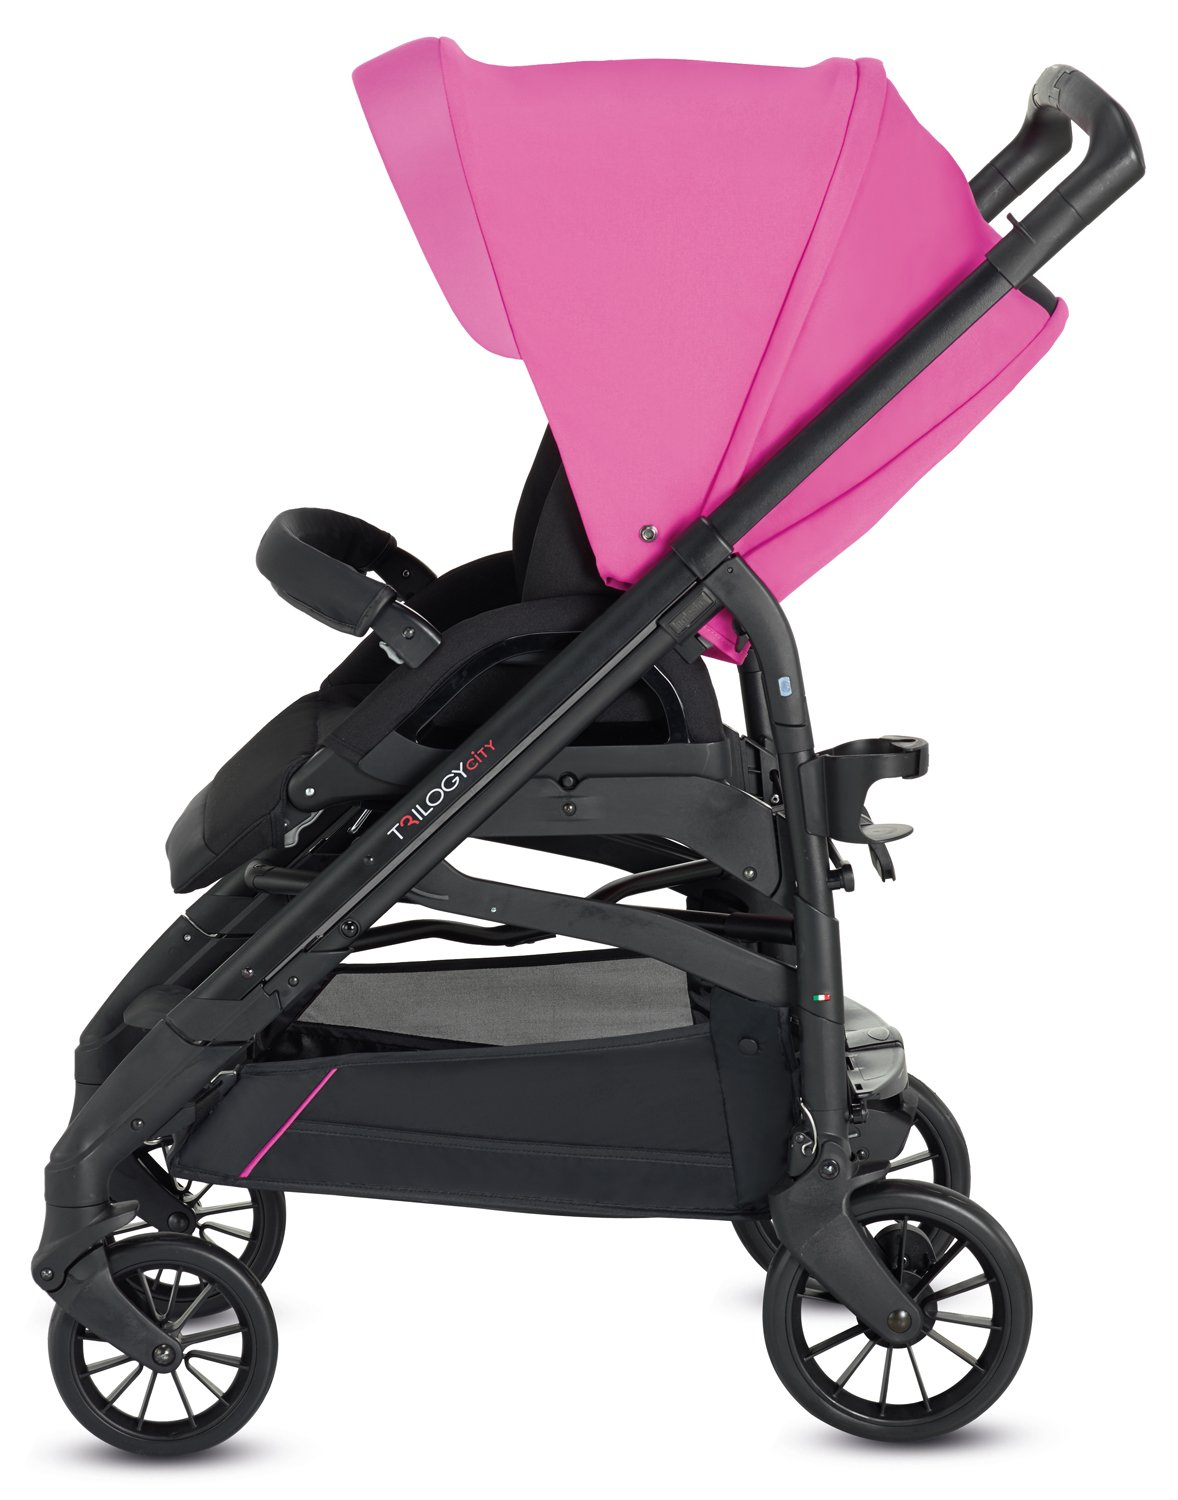 Inglesina TRILOGY COLORS SYSTEM PEGGY PINK con chasis City Black: Amazon.es: Bebé